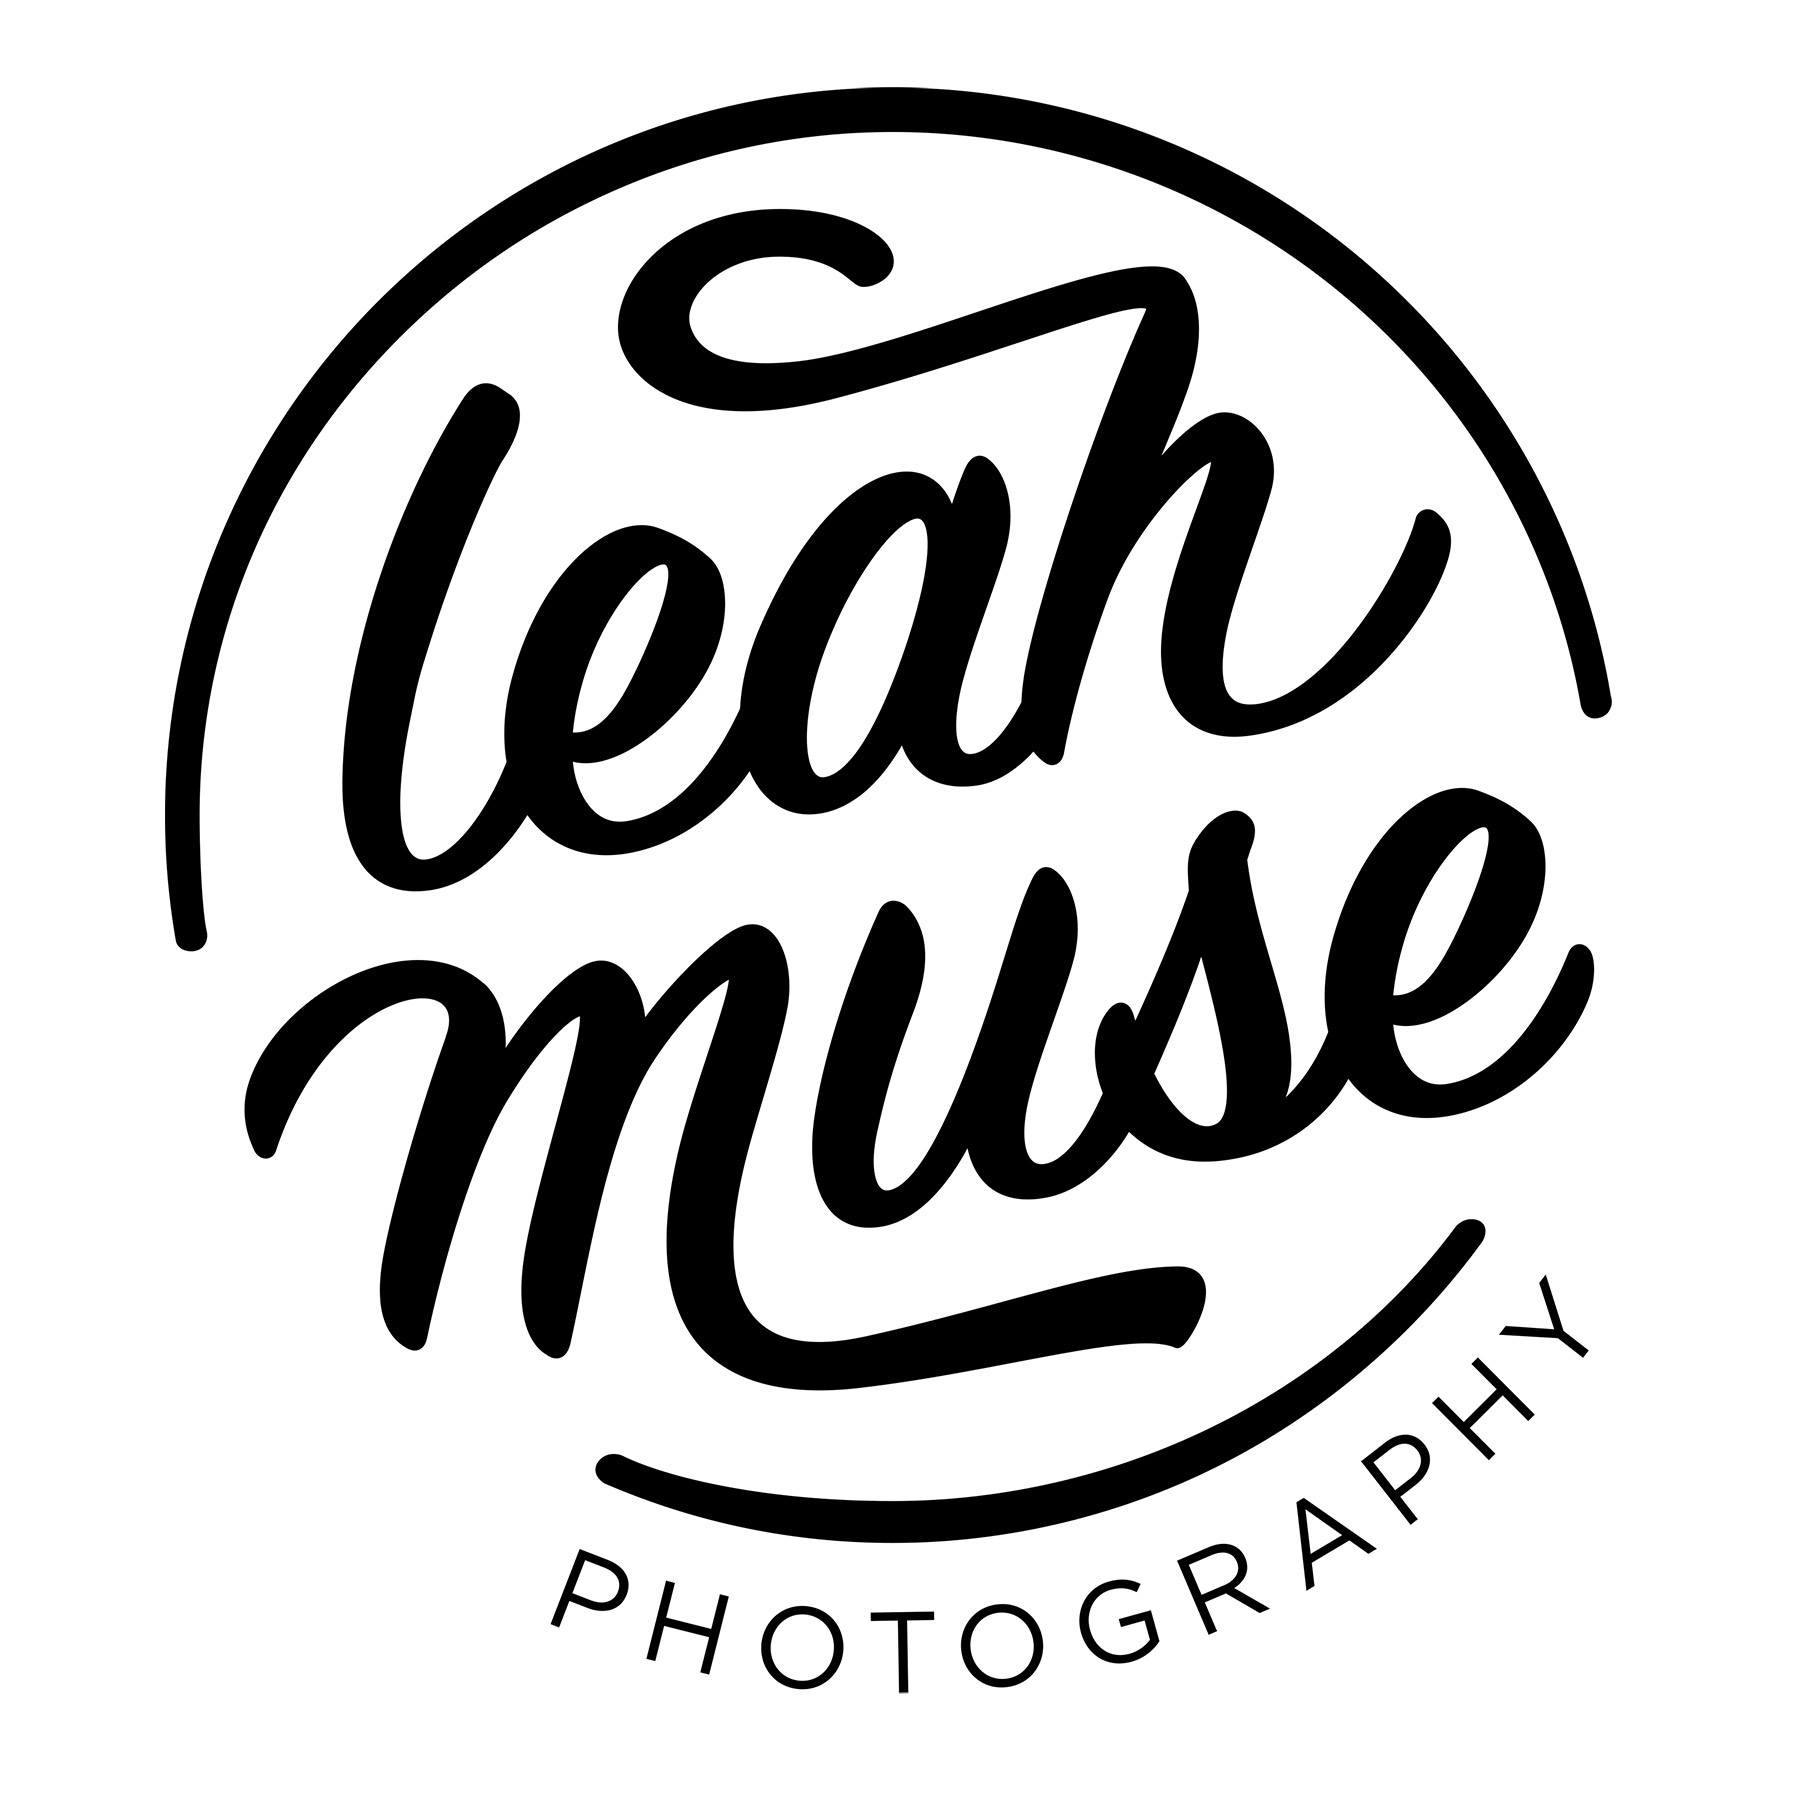 Leah Muse Photography - www.leahmusephotography.comAustin, TX and beyond traveler specializing in weddings, portraits, events, lifestyle and editorial.